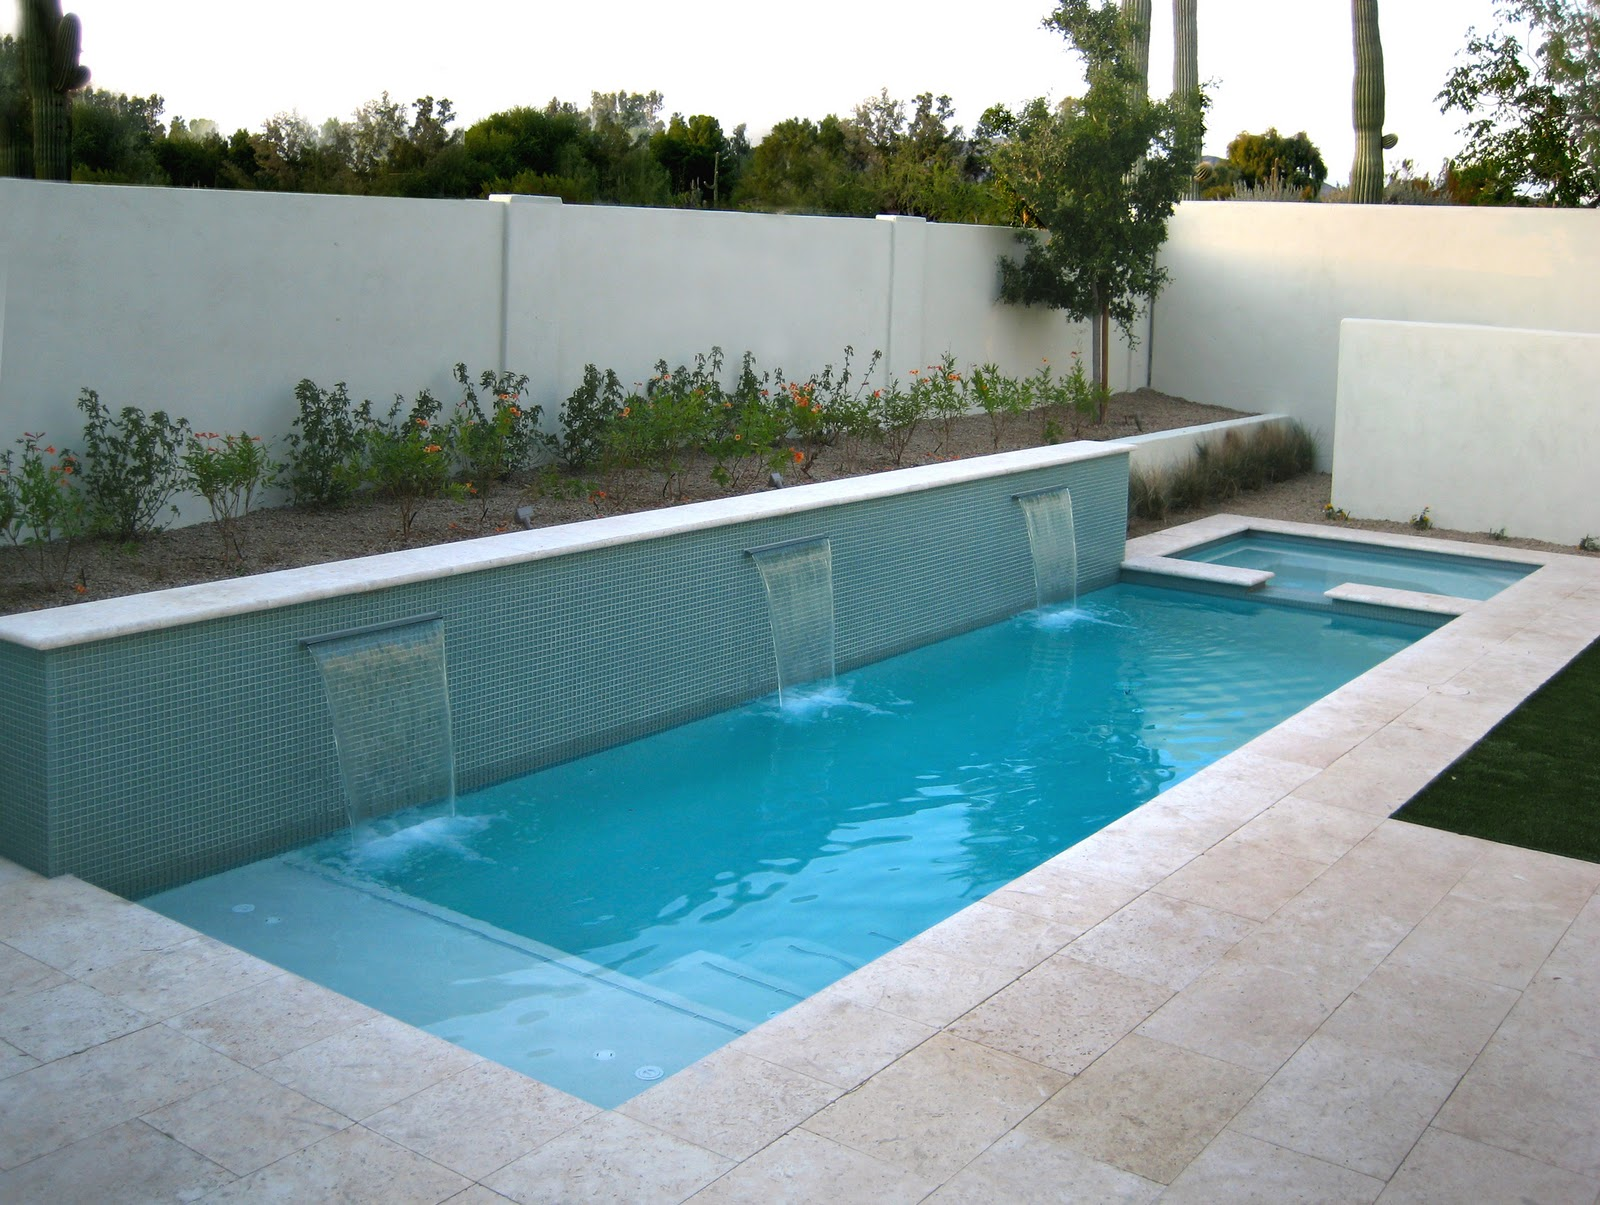 Swimming Pools In Small Spaces Alpentile Glass Tile Pools And Spas